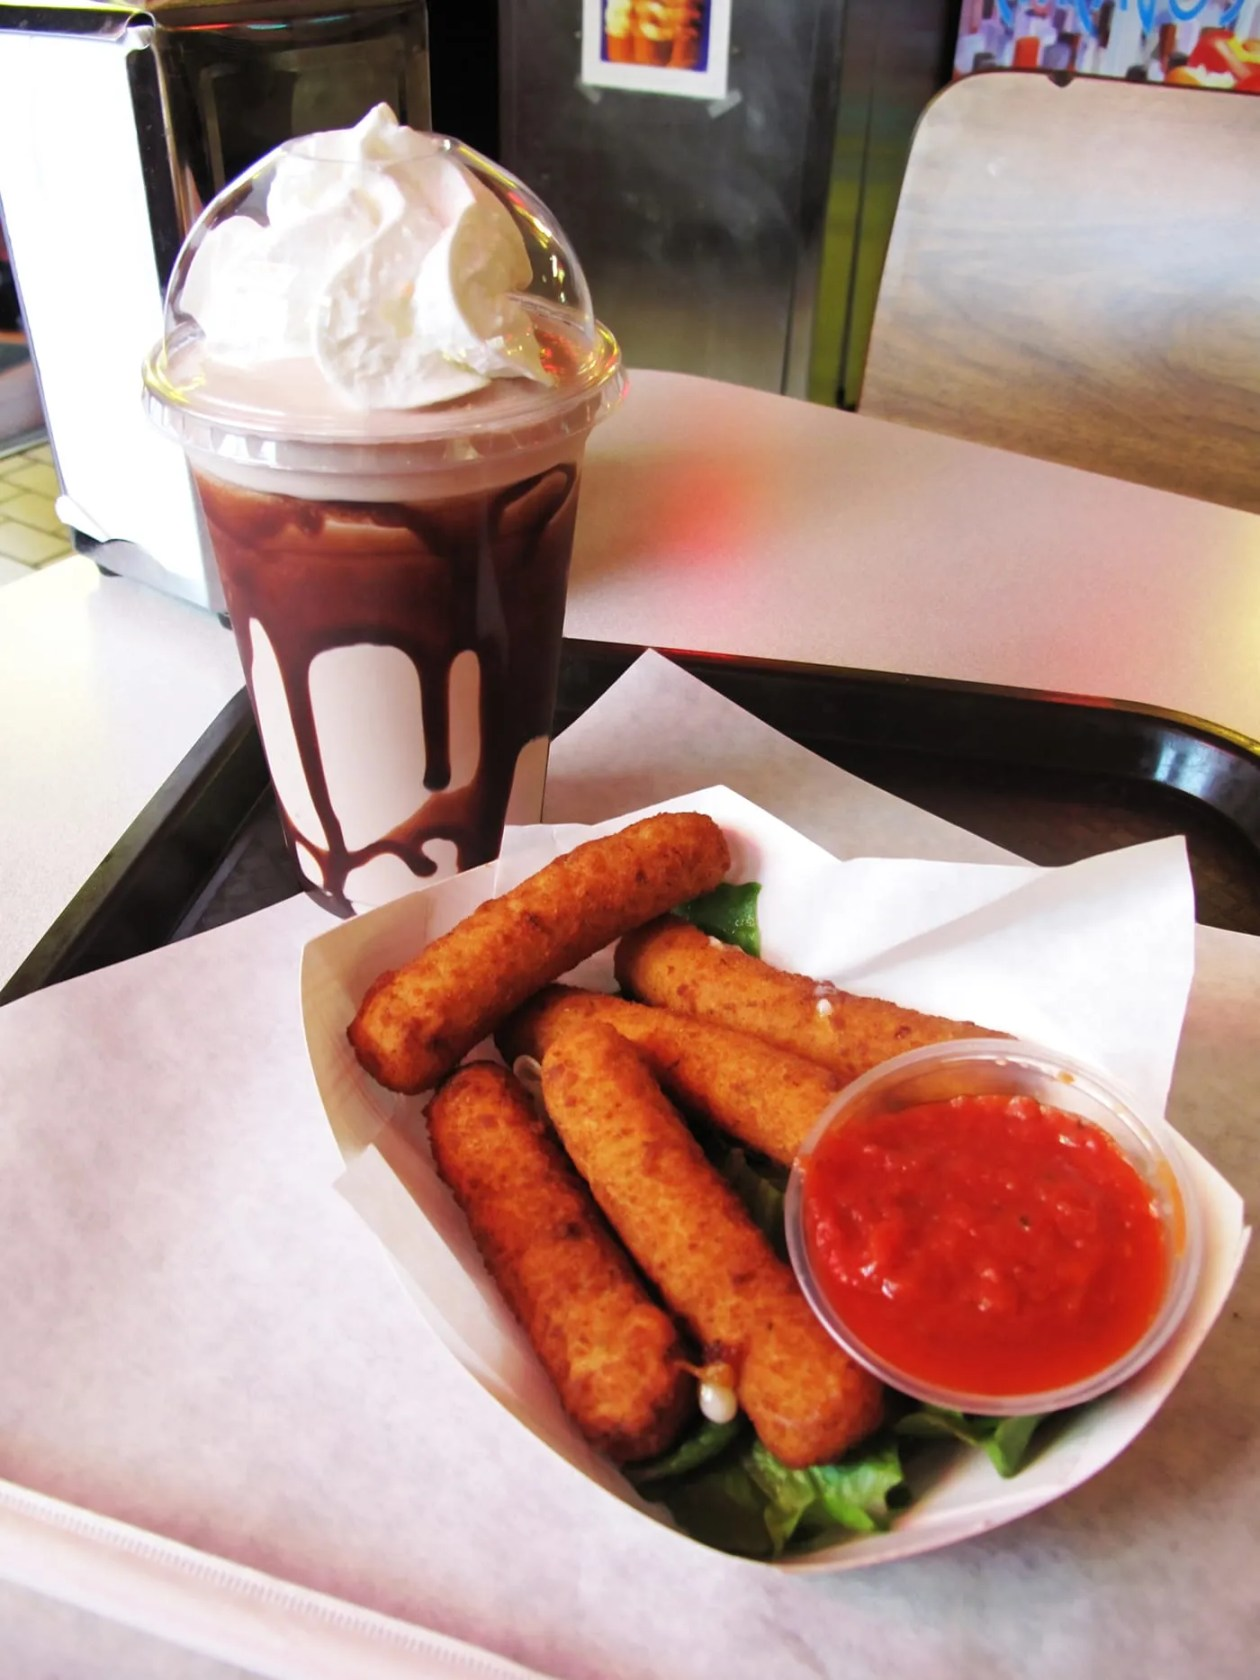 Cheese sticks and a milkshake at Bunny Hutch Novelty Golf in Lincolnwood, Illinois.